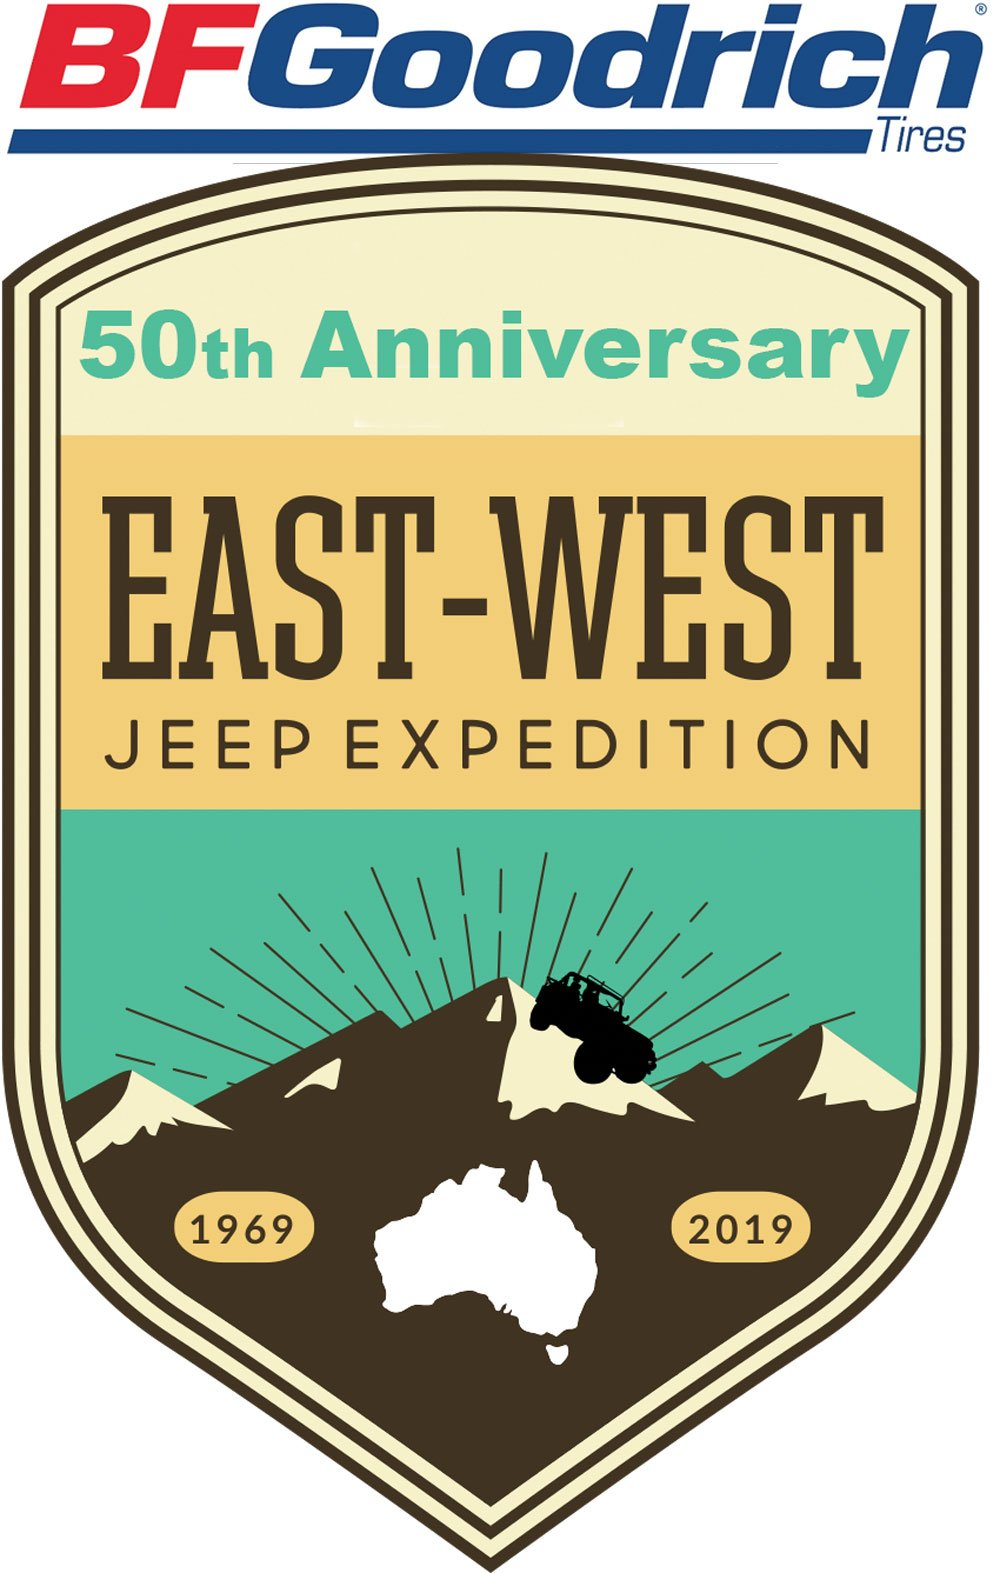 East-West Jeep Expedition logo